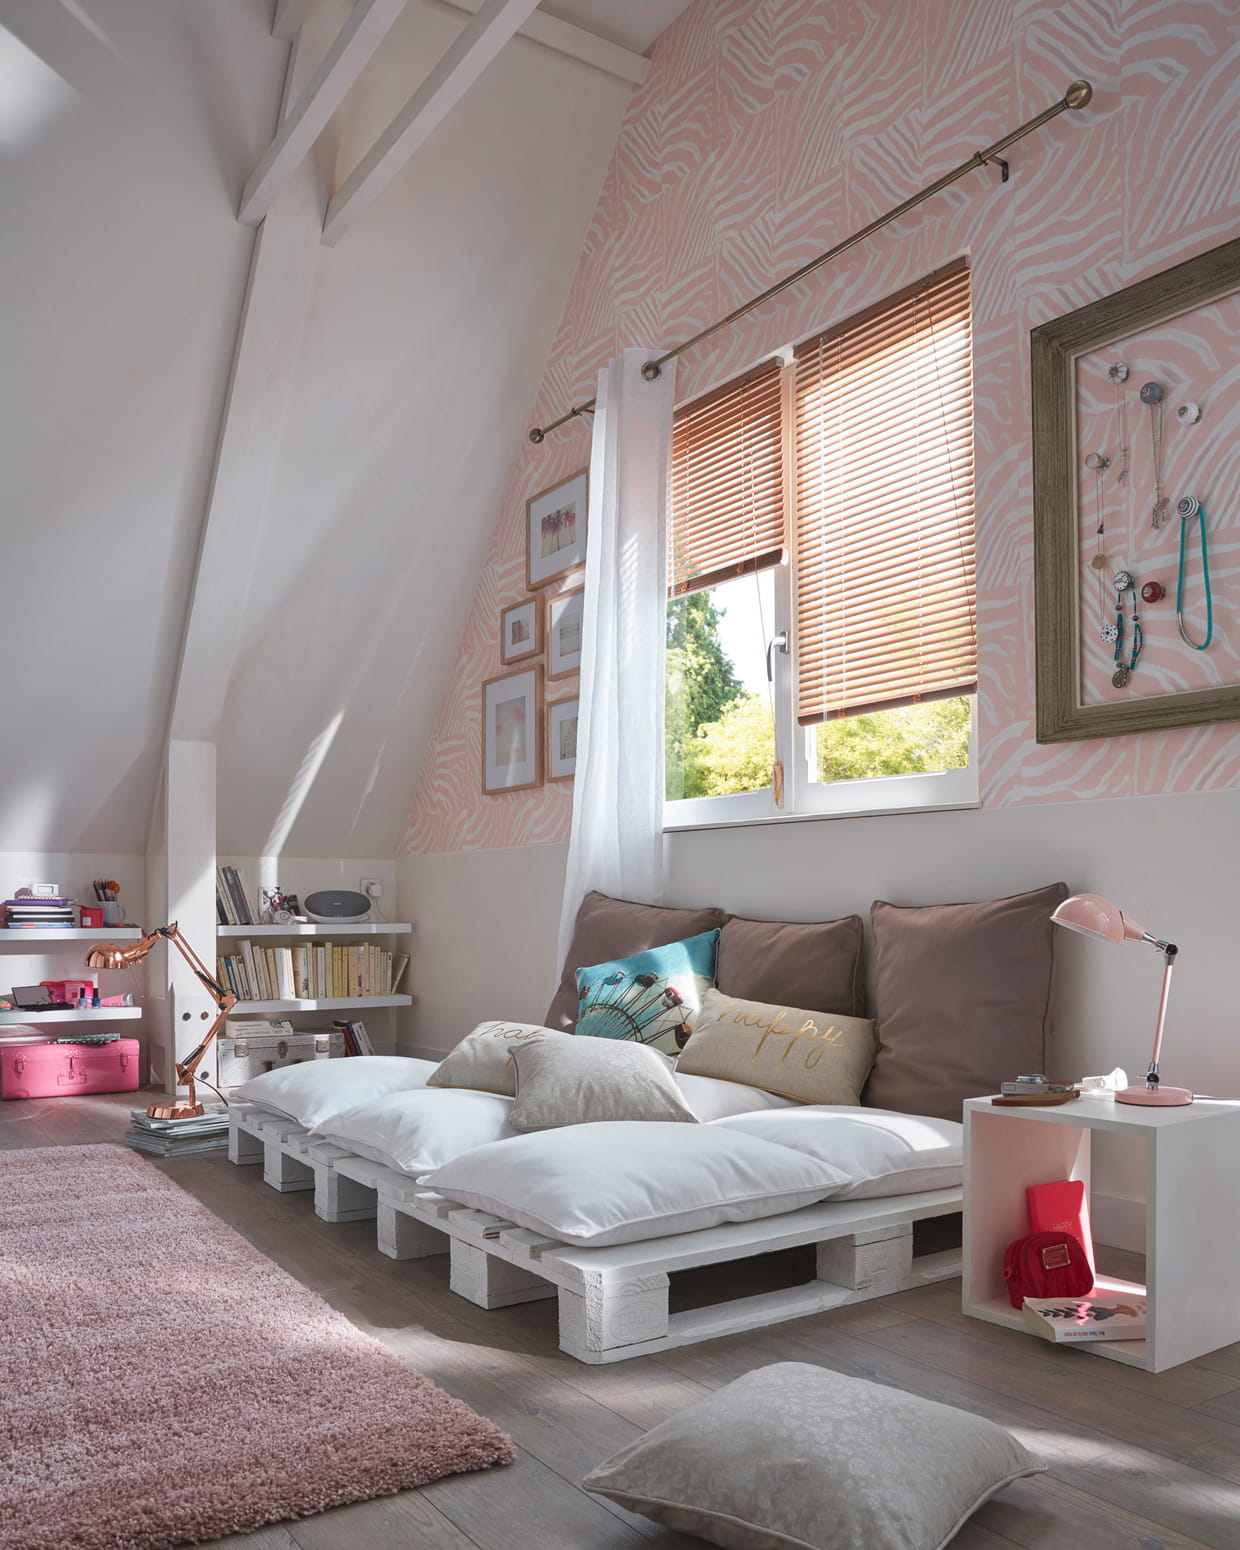 papier peint vinyle sur intiss effet peau de z bre rose chez castorama. Black Bedroom Furniture Sets. Home Design Ideas